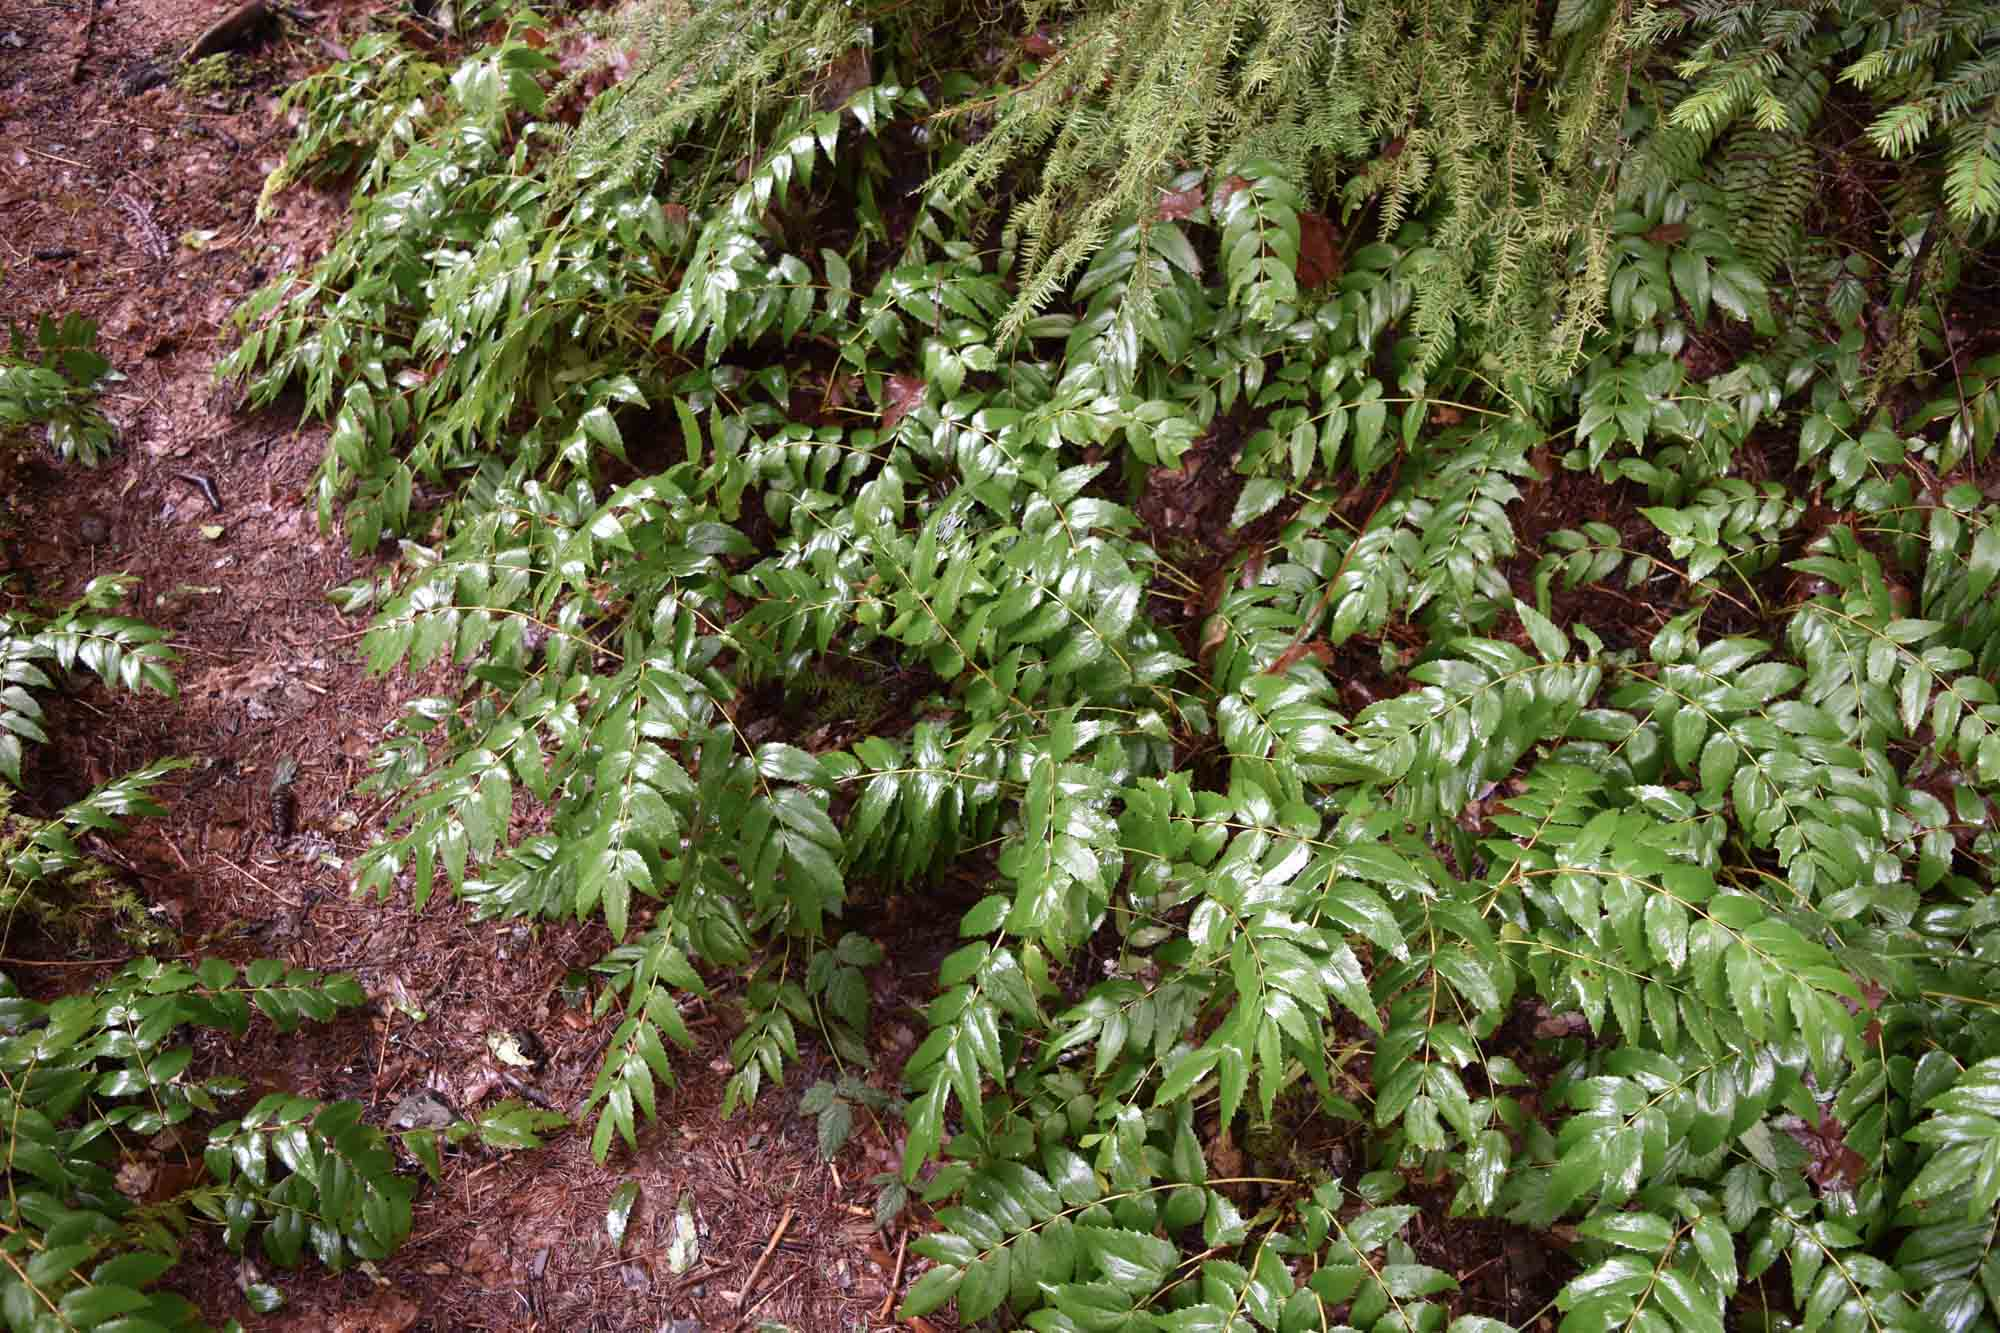 Wildcrafting- Collecting Wild Food and Medicine - PNW from Scratch_4